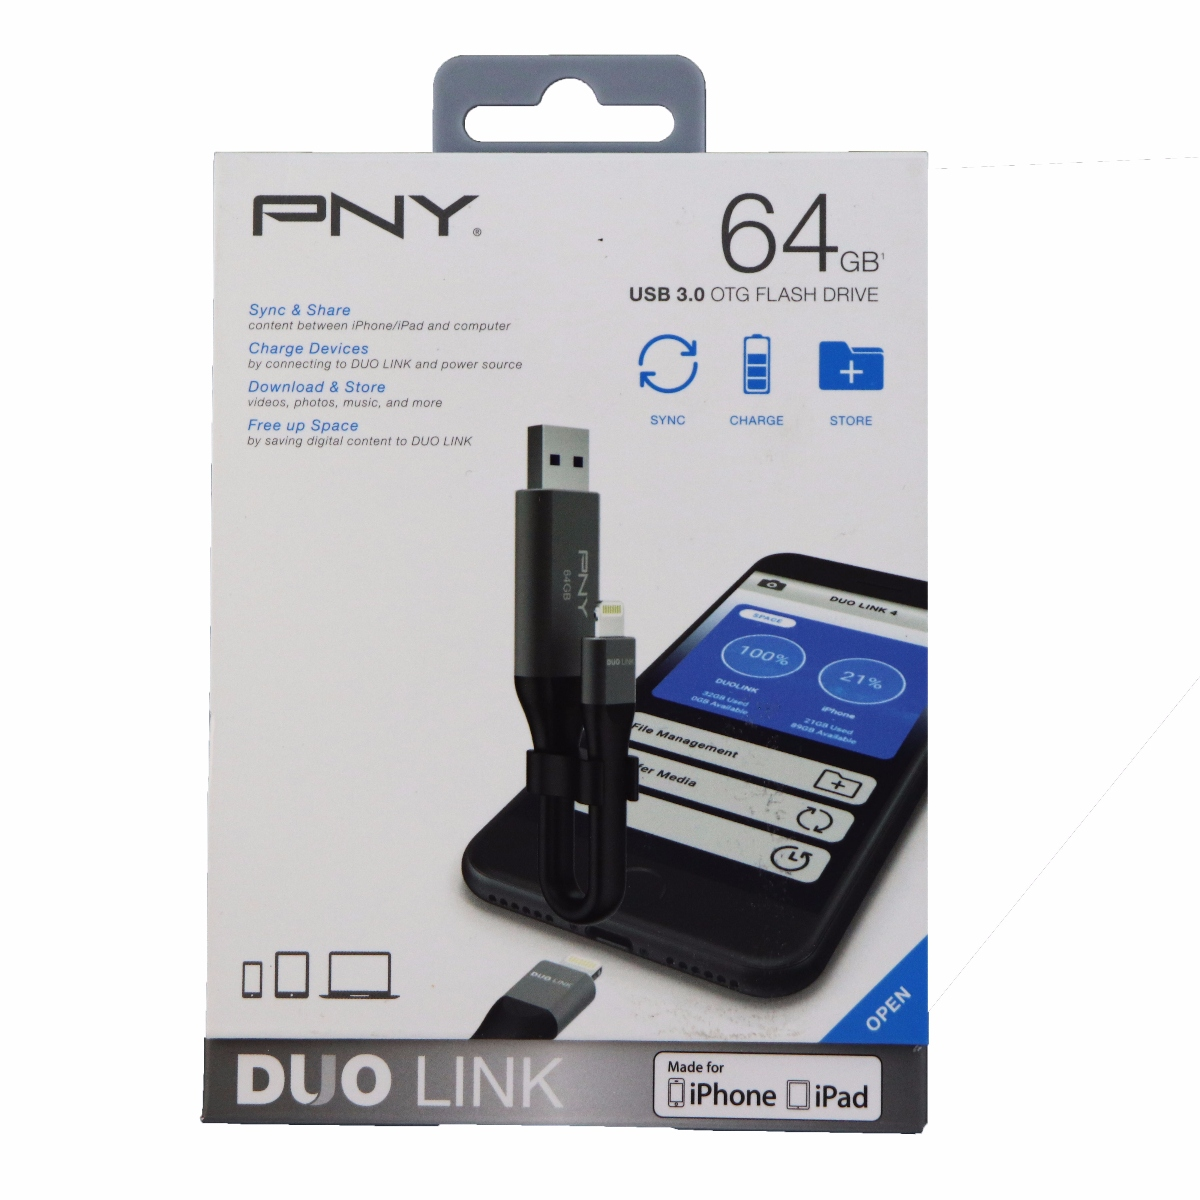 PNY 64GB Duo Link USB 3.0 On the Go Flash Drive for iPhone and iPads (Refurbished)